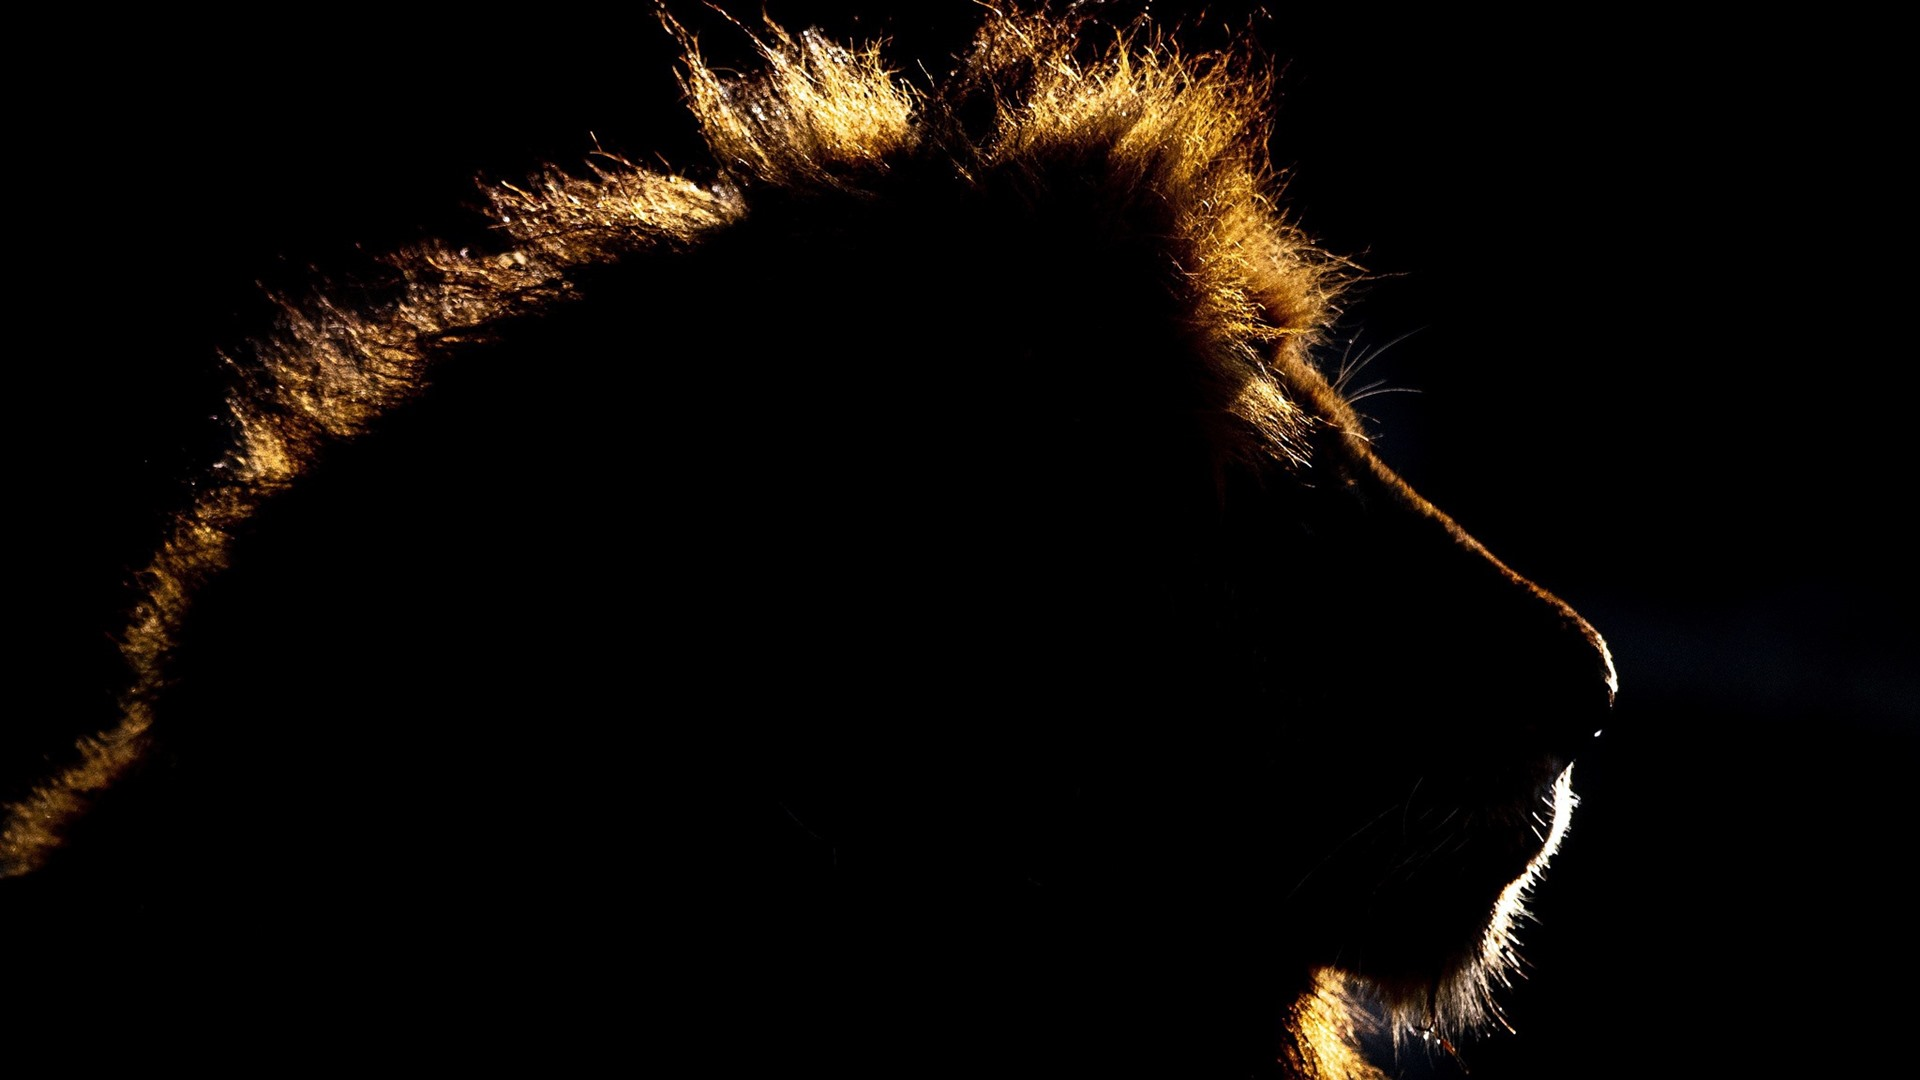 Wallpaper Animal King Lion Head Silhouette Black Background 1920x1200 Hd Picture Image